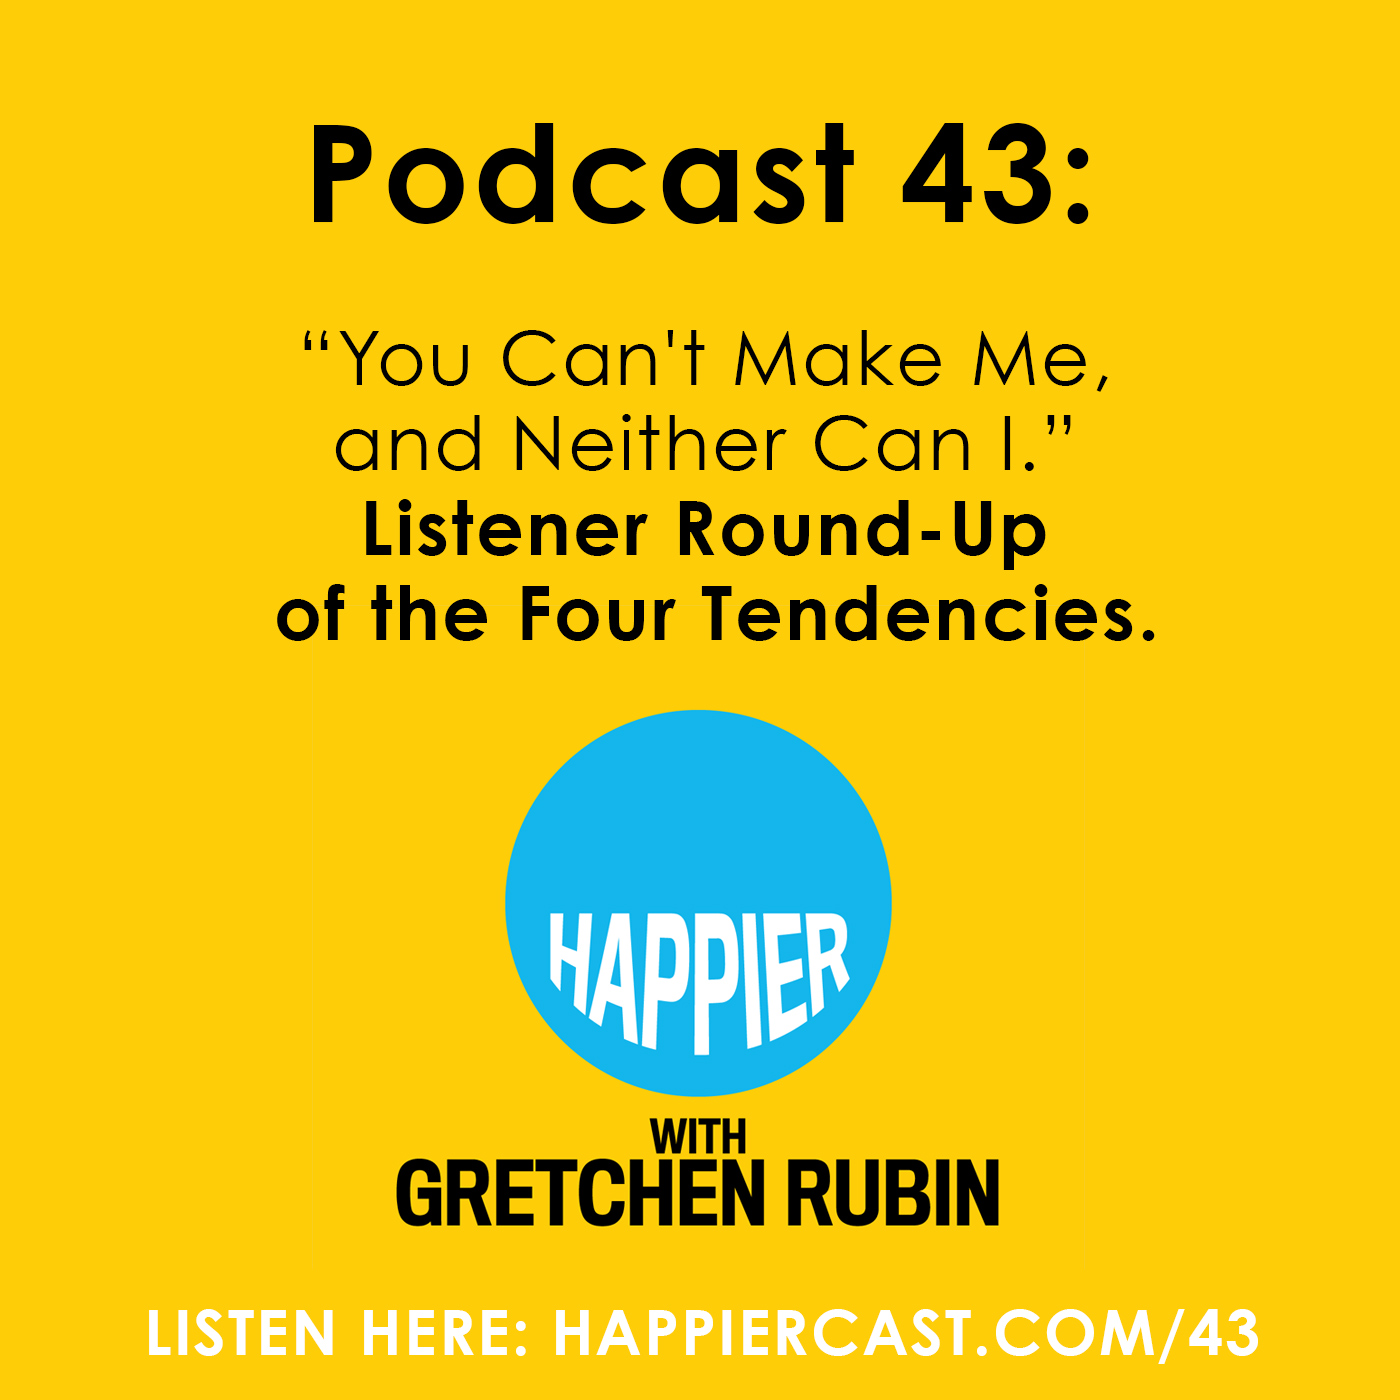 Happier with Gretchen Rubin #43 - Listen at Happiercast.com/43